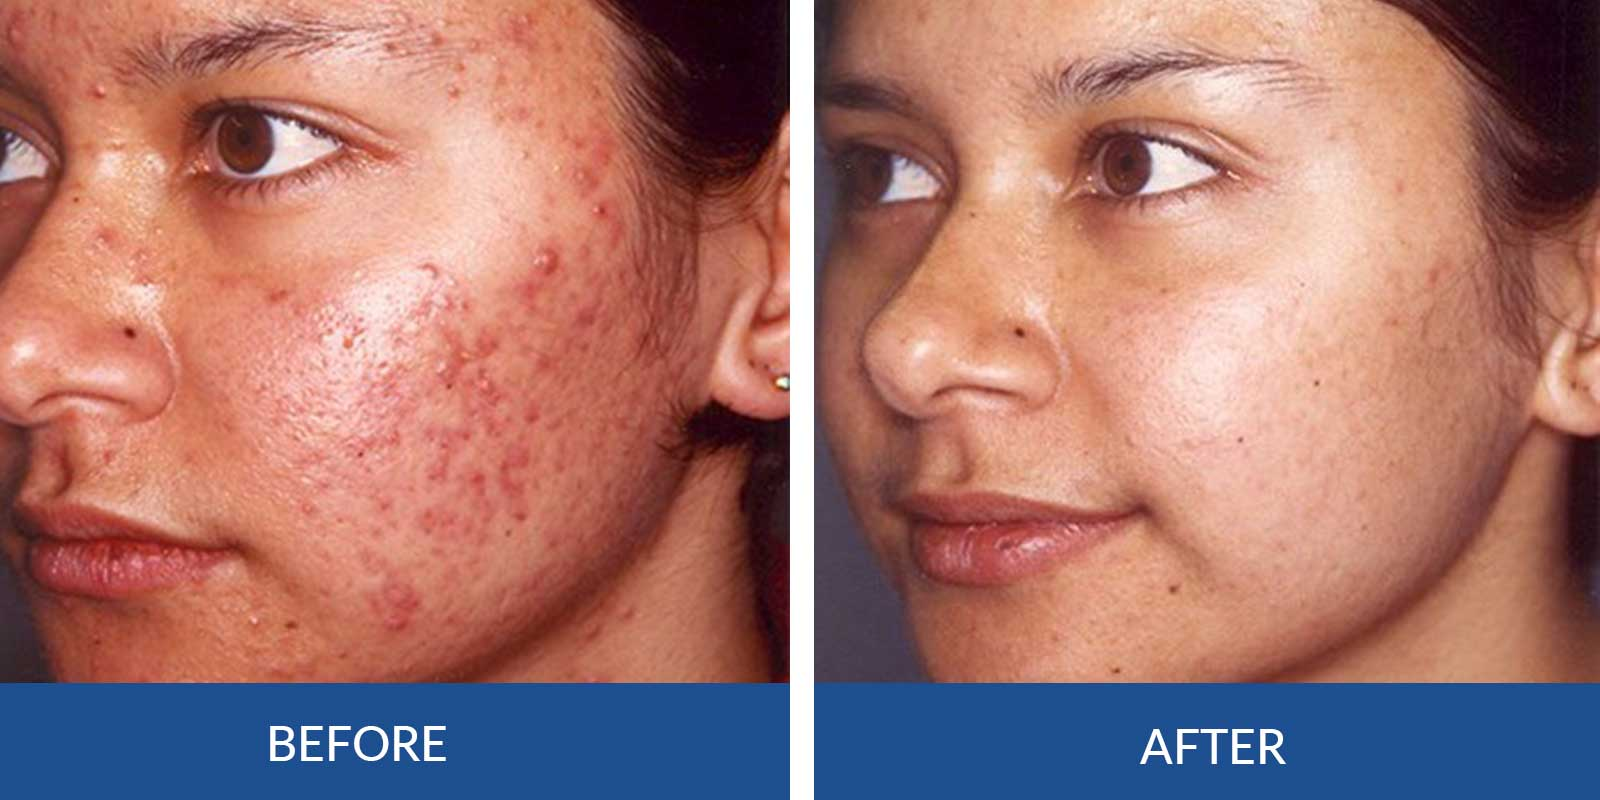 Acne AA-3-4-Before-after-Treatment